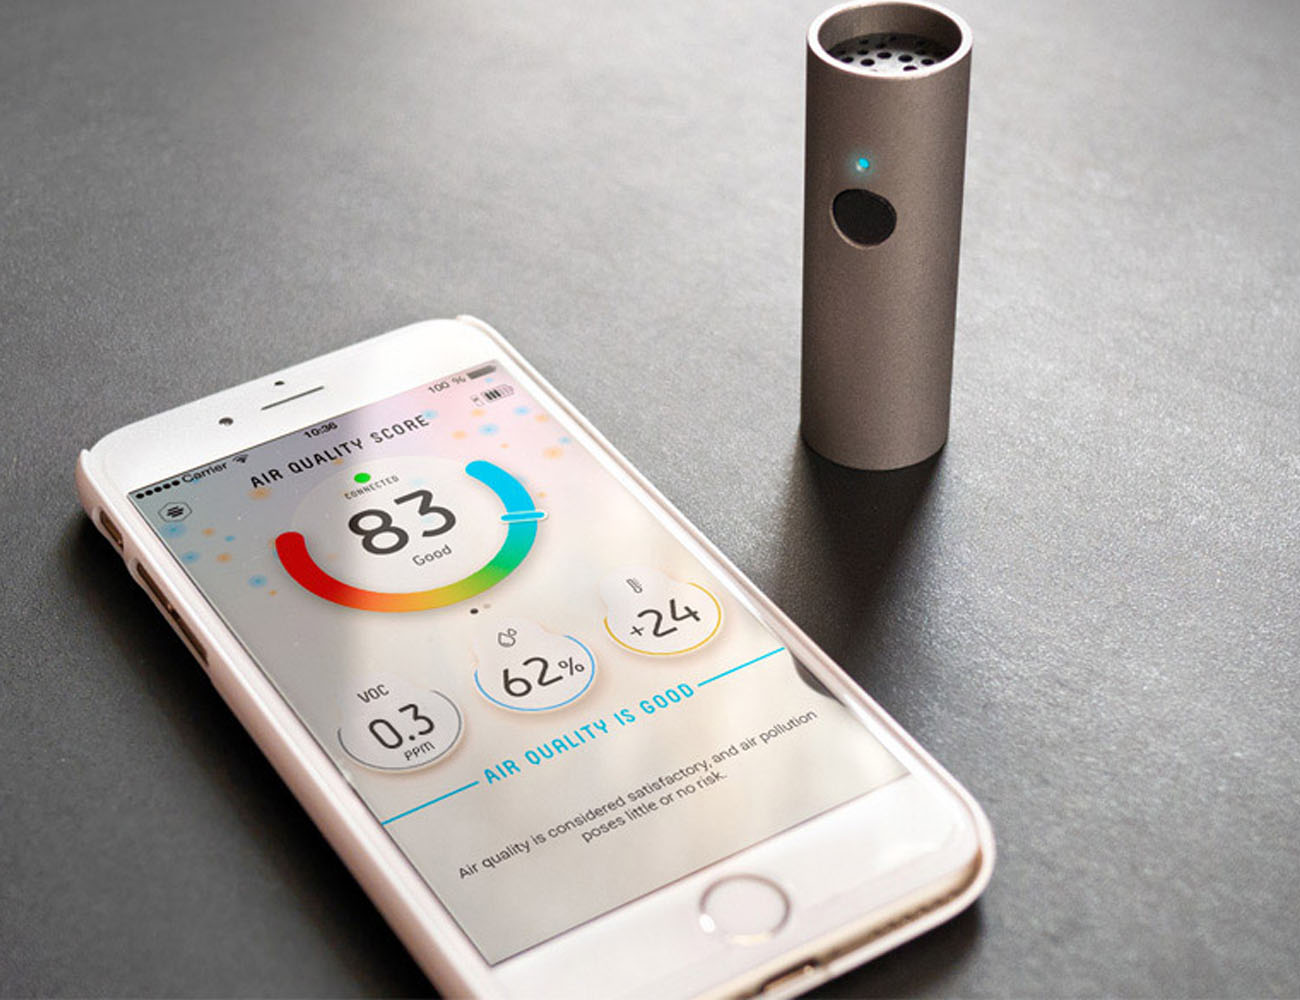 Atomtube – The Portable Air Pollution Monitor